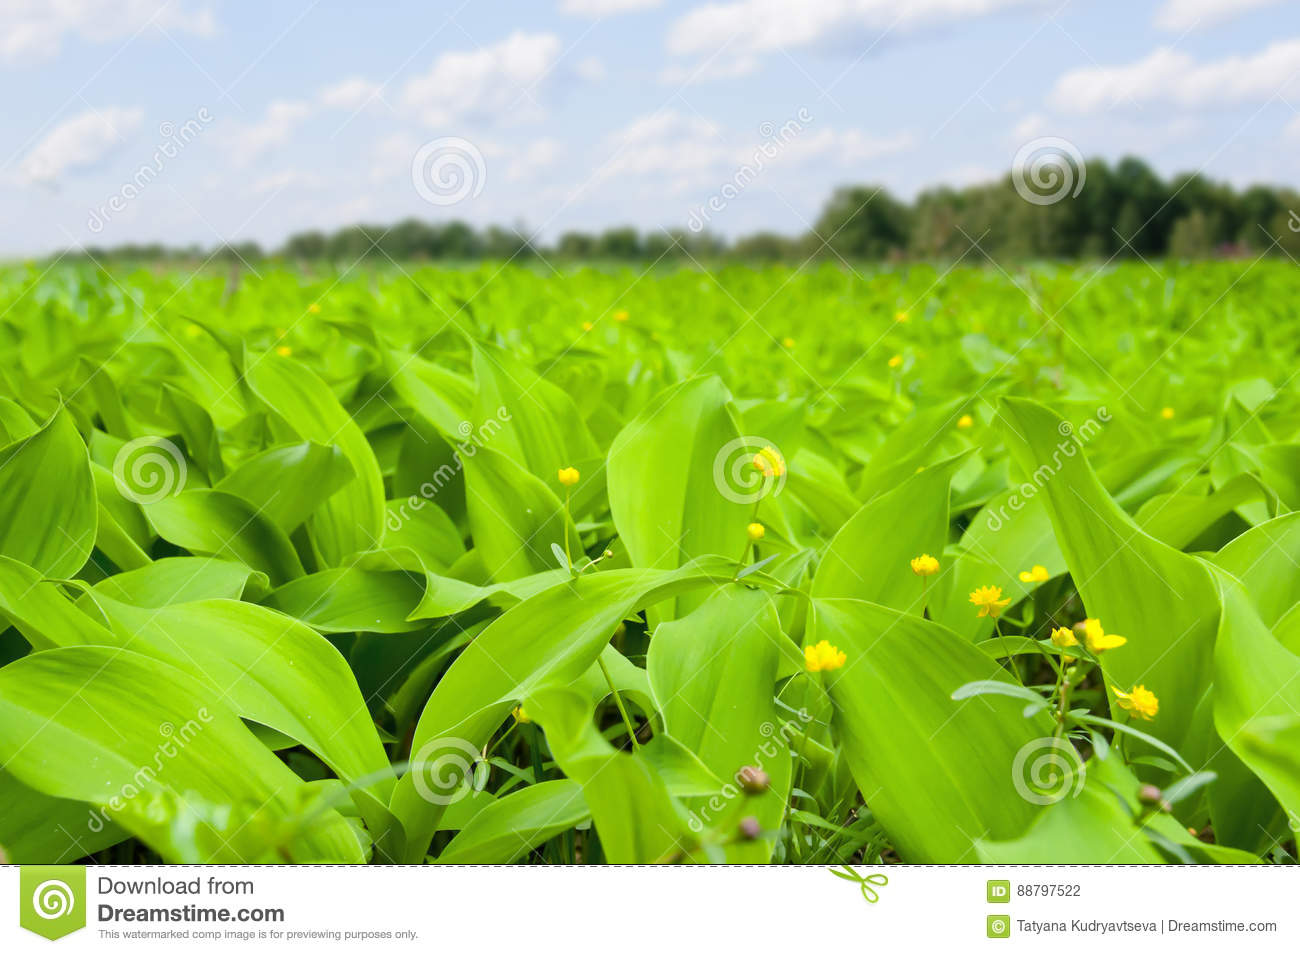 Field Of Herbs With Big Leaves And Little Yellow Flowers Stock Photo